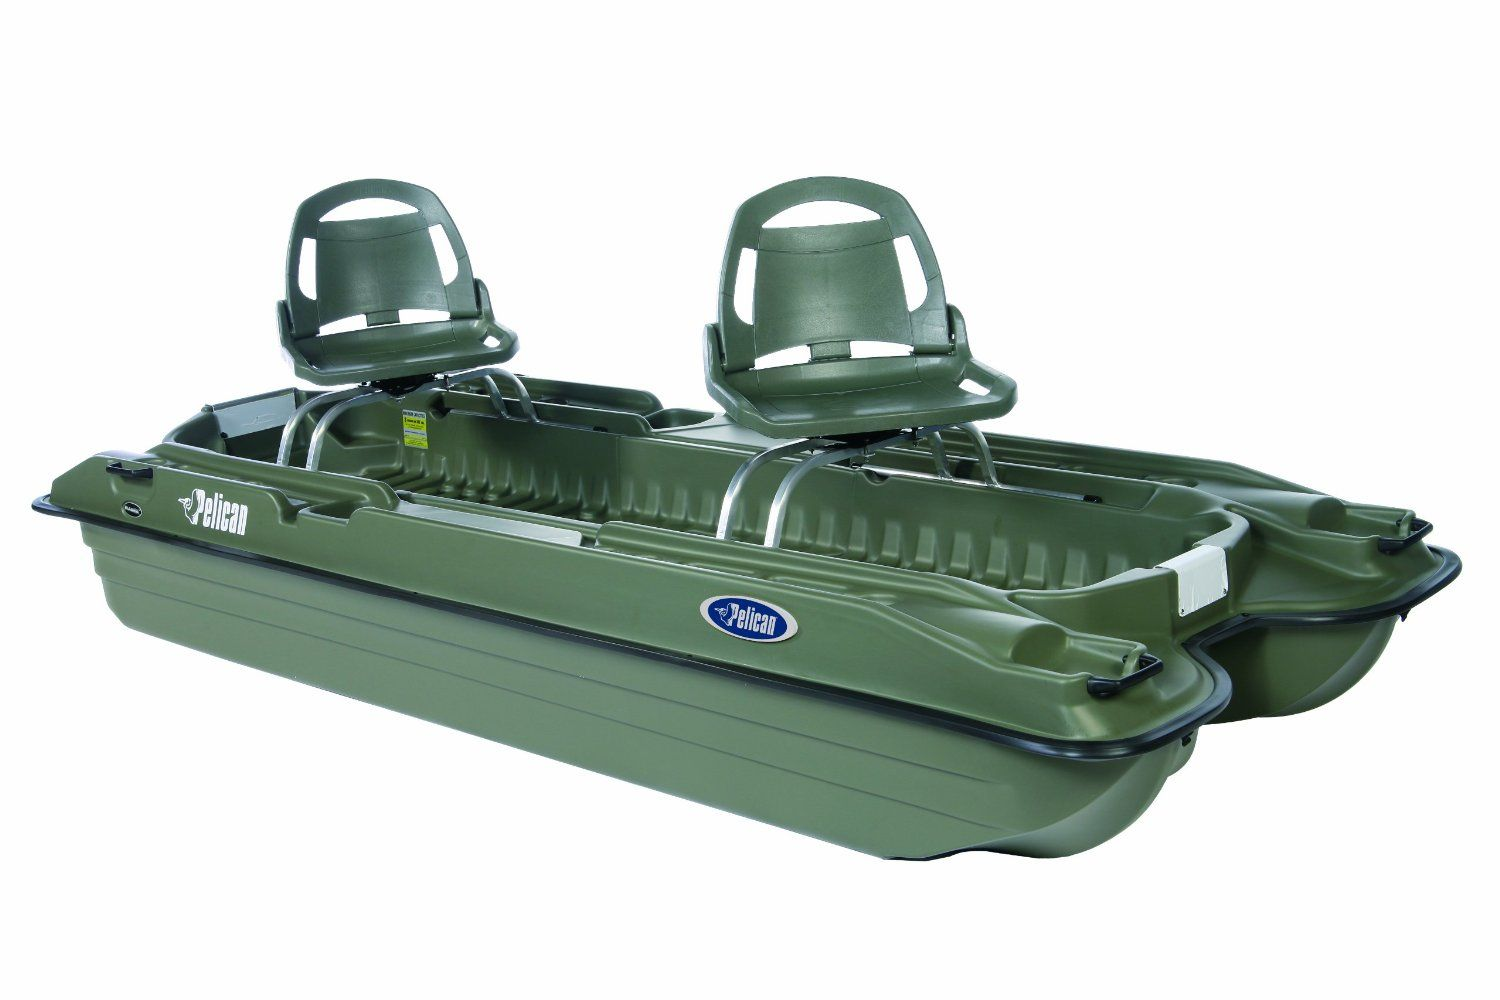 Pelican Bass Raider 10e Fishing Boat The Bass Raider S Tri